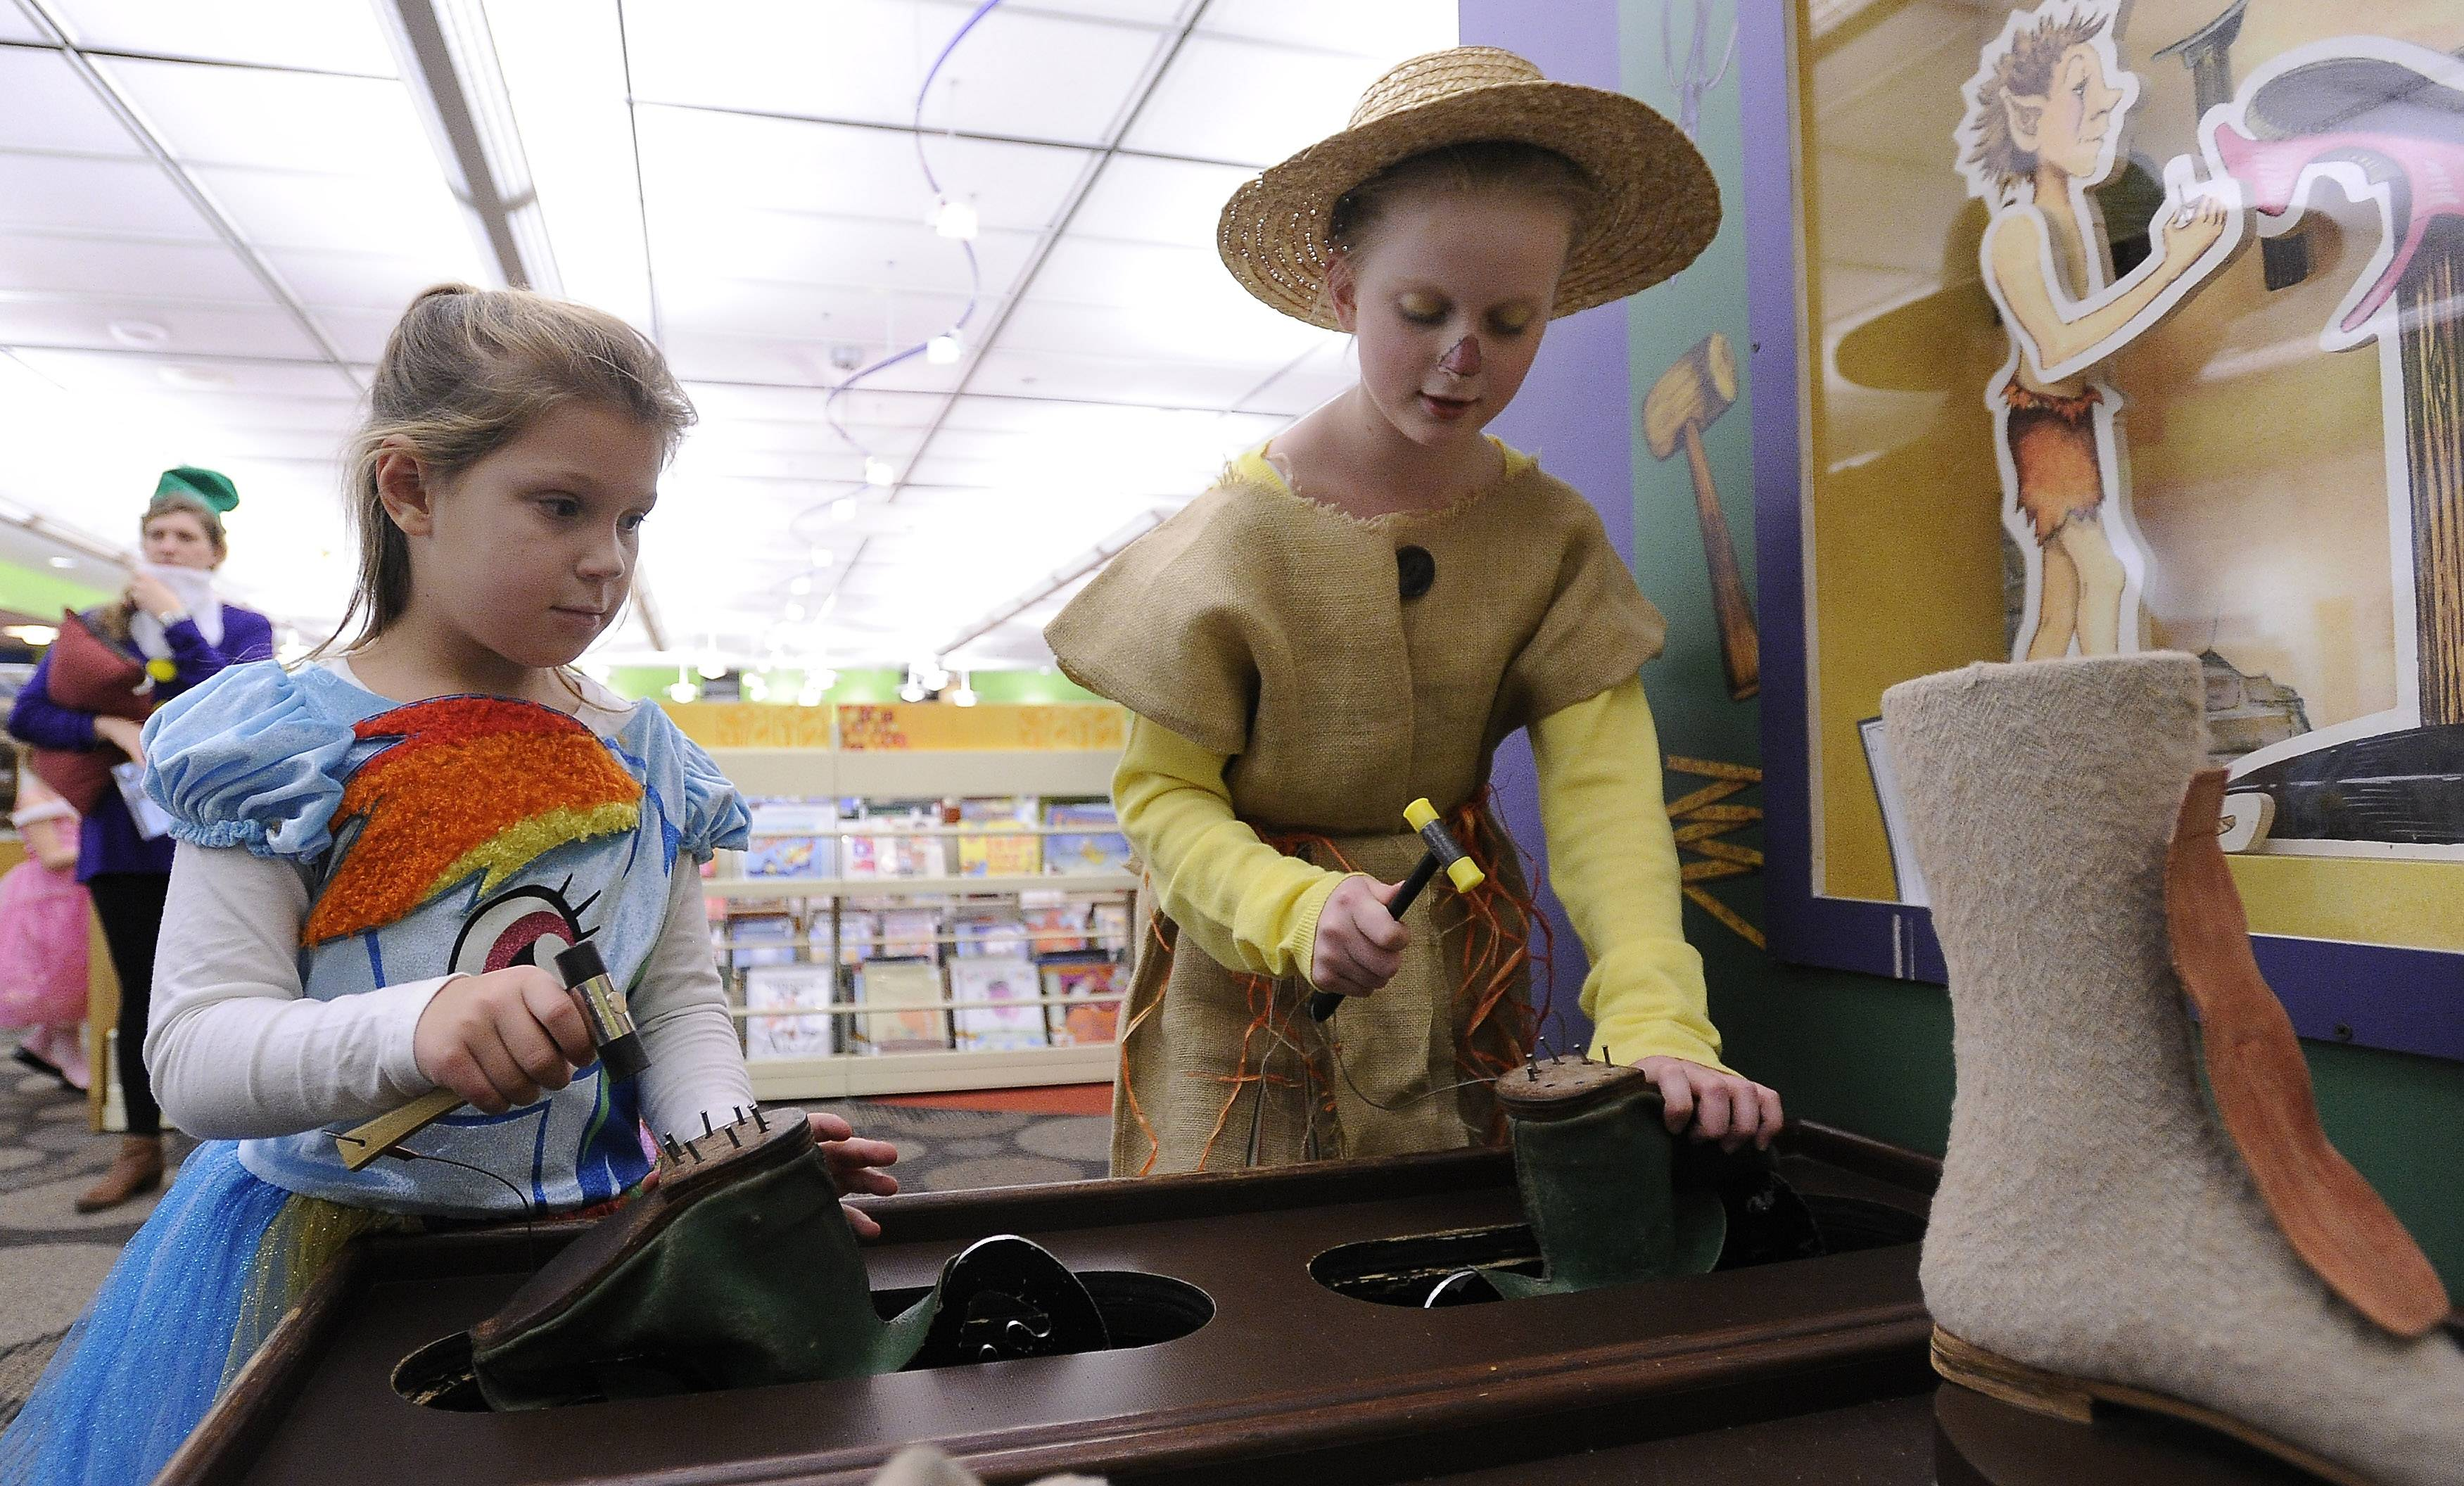 Kamila Starenda, 6, and her sister Amelia, 10, do a bit of hammering on the fairy tale adventures at the Arlington Heights Fairy Tale and Fantasy Gala at the Arlington Heights Memorial Library on Saturday.